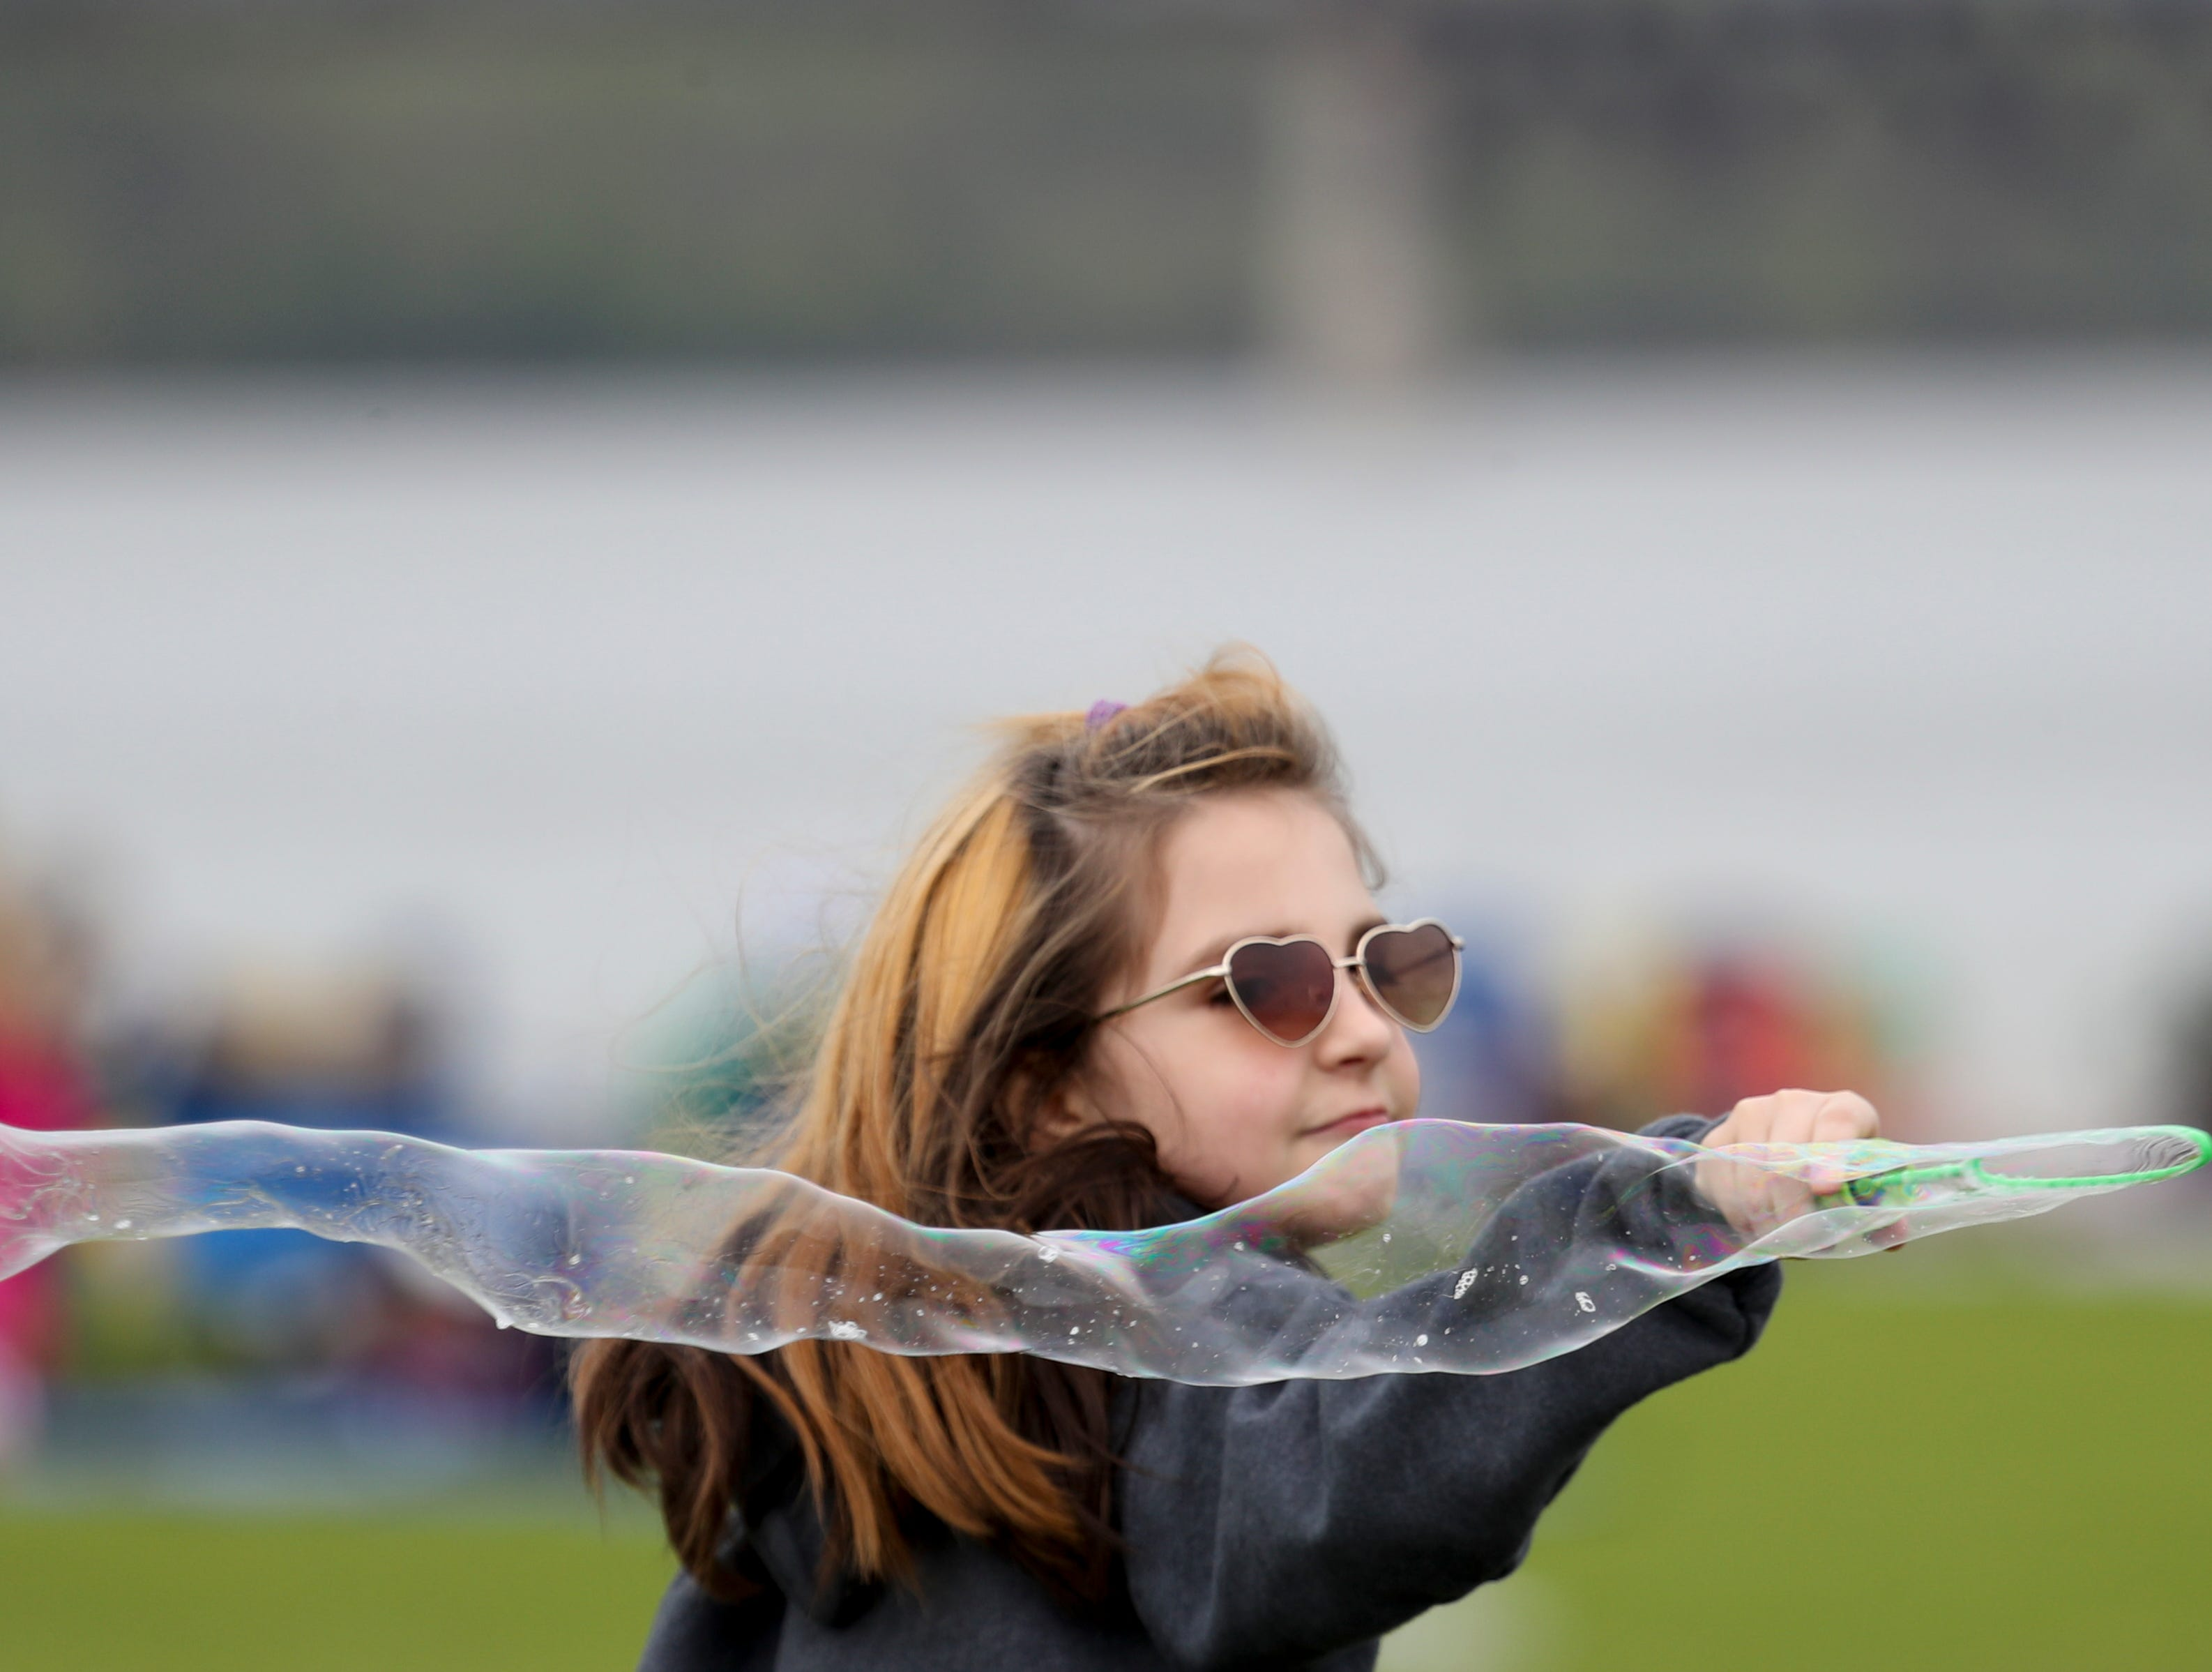 Trinity Rolfe enjoys her bubble maker at Thunder Over Louisville airshow to being on April 13.